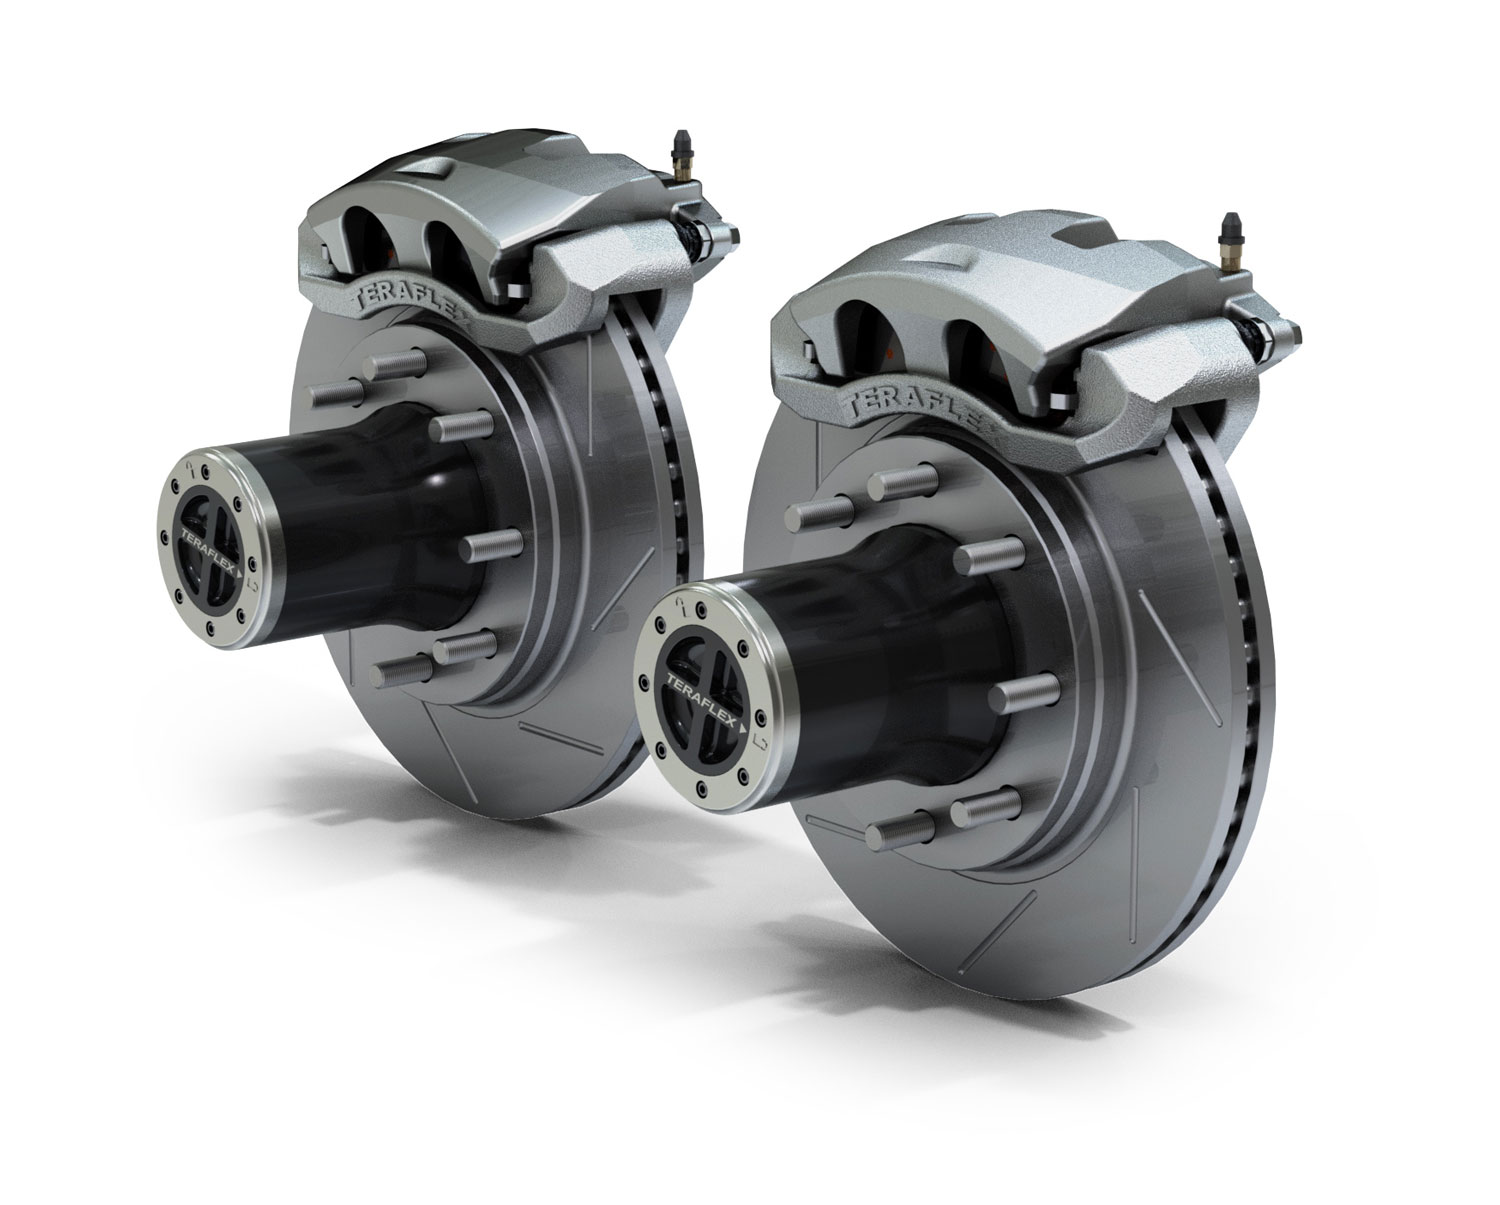 Teraflex JK Front 8-Lug Locking Hub Conversion Kit w/ Big Brakes Slotted Rotors - JK